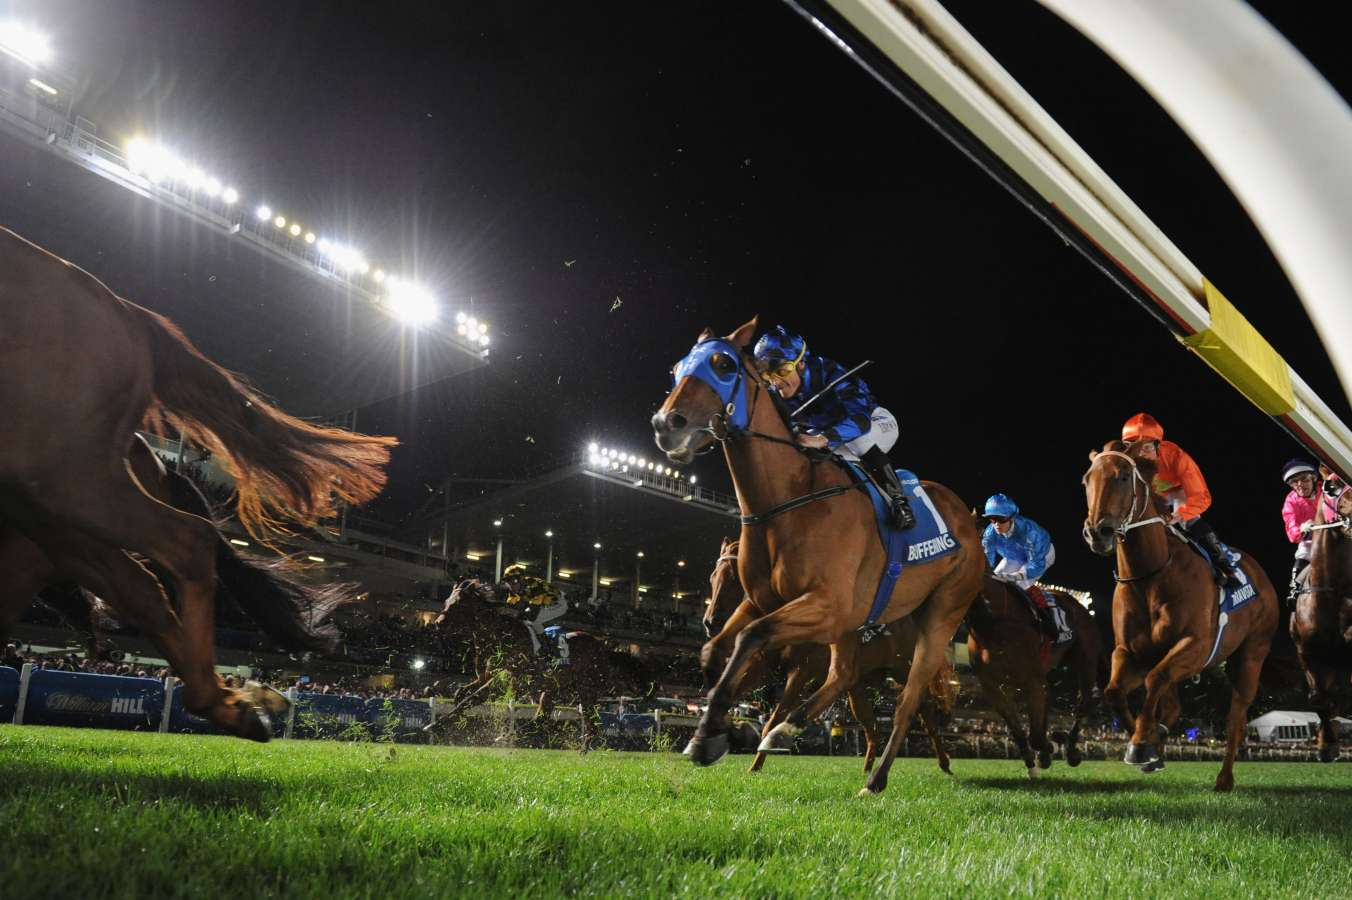 Fantasy Horse Racing Tips: Friday October 25th 2019